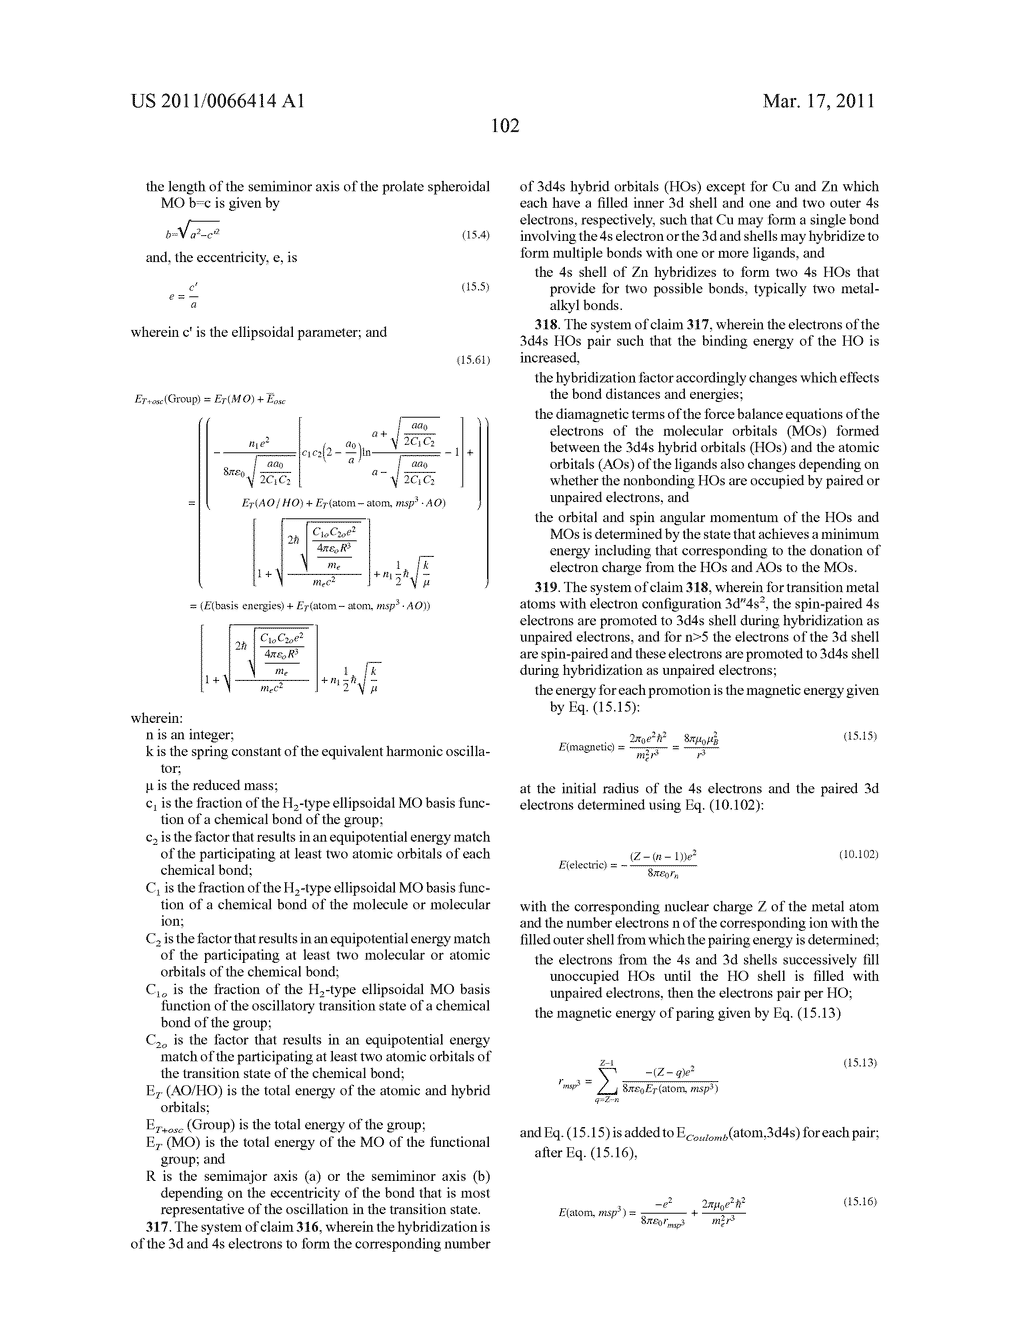 System and Method of Computing and Rendering the Nature of Molecules,Molecular Ions, Compounds and Materials - diagram, schematic, and image 132